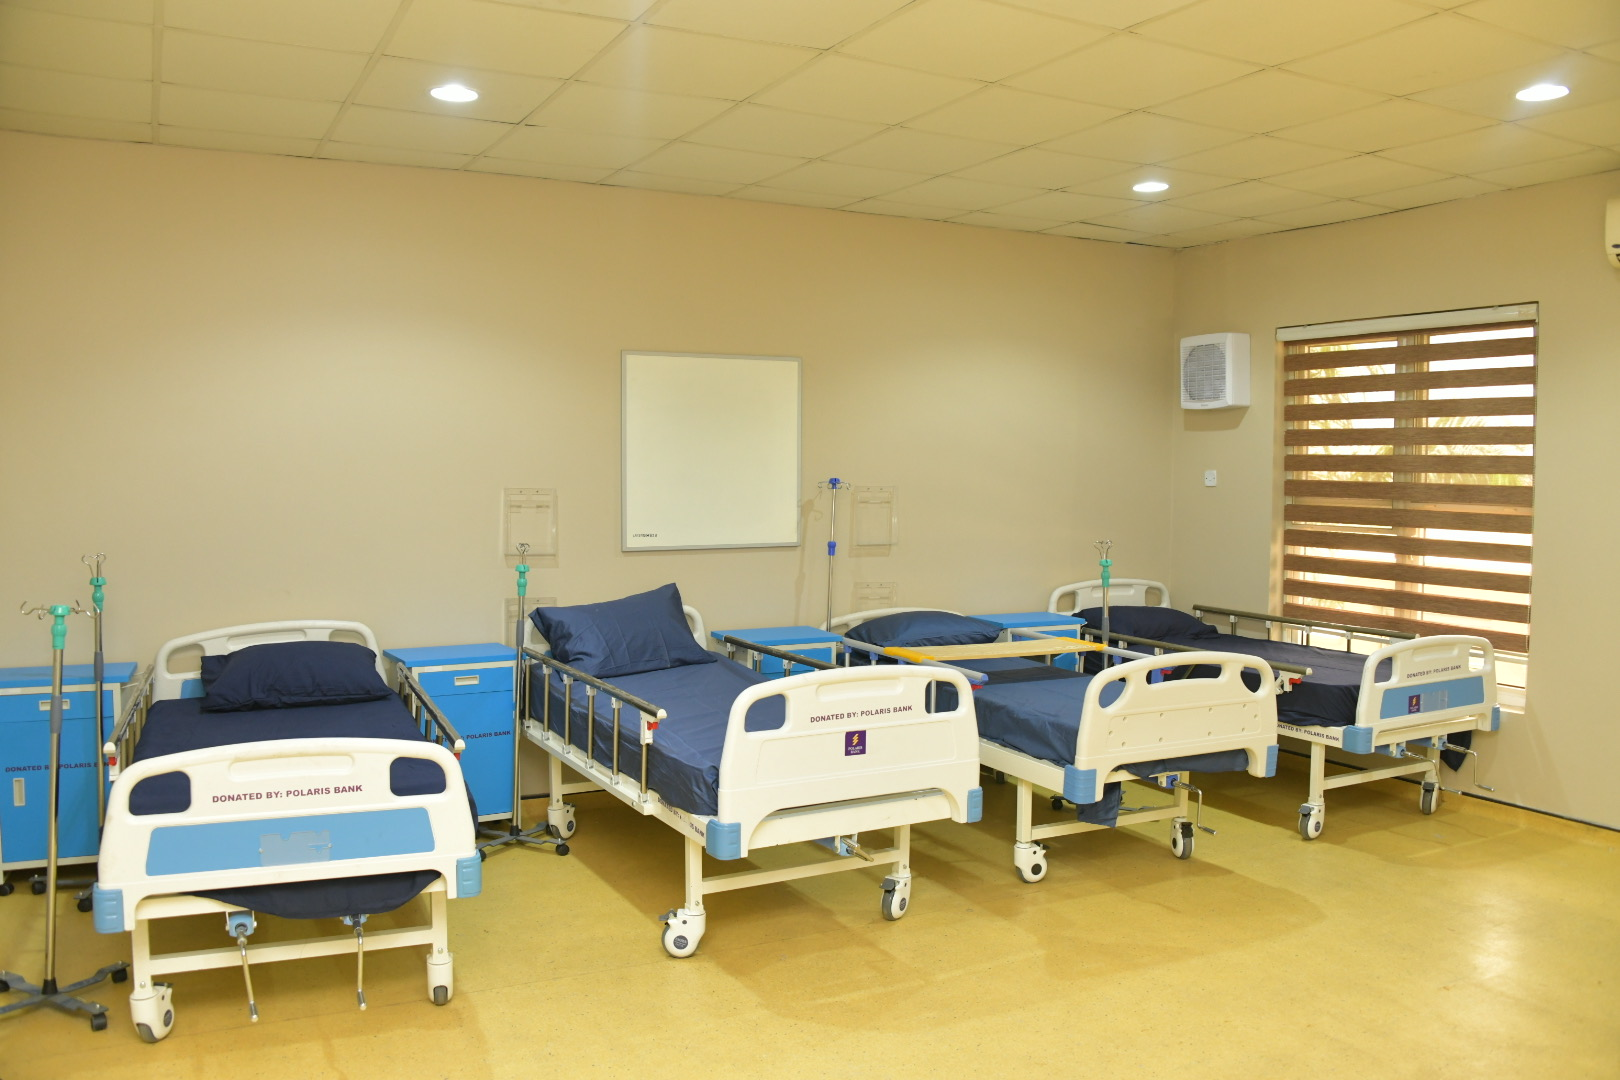 The Isolation Centre for Coronavirus treatment at the Gbagada General Hospital, unveiled by Governor Babajide Sanwo-Olu, on Friday, May 1, 2020.